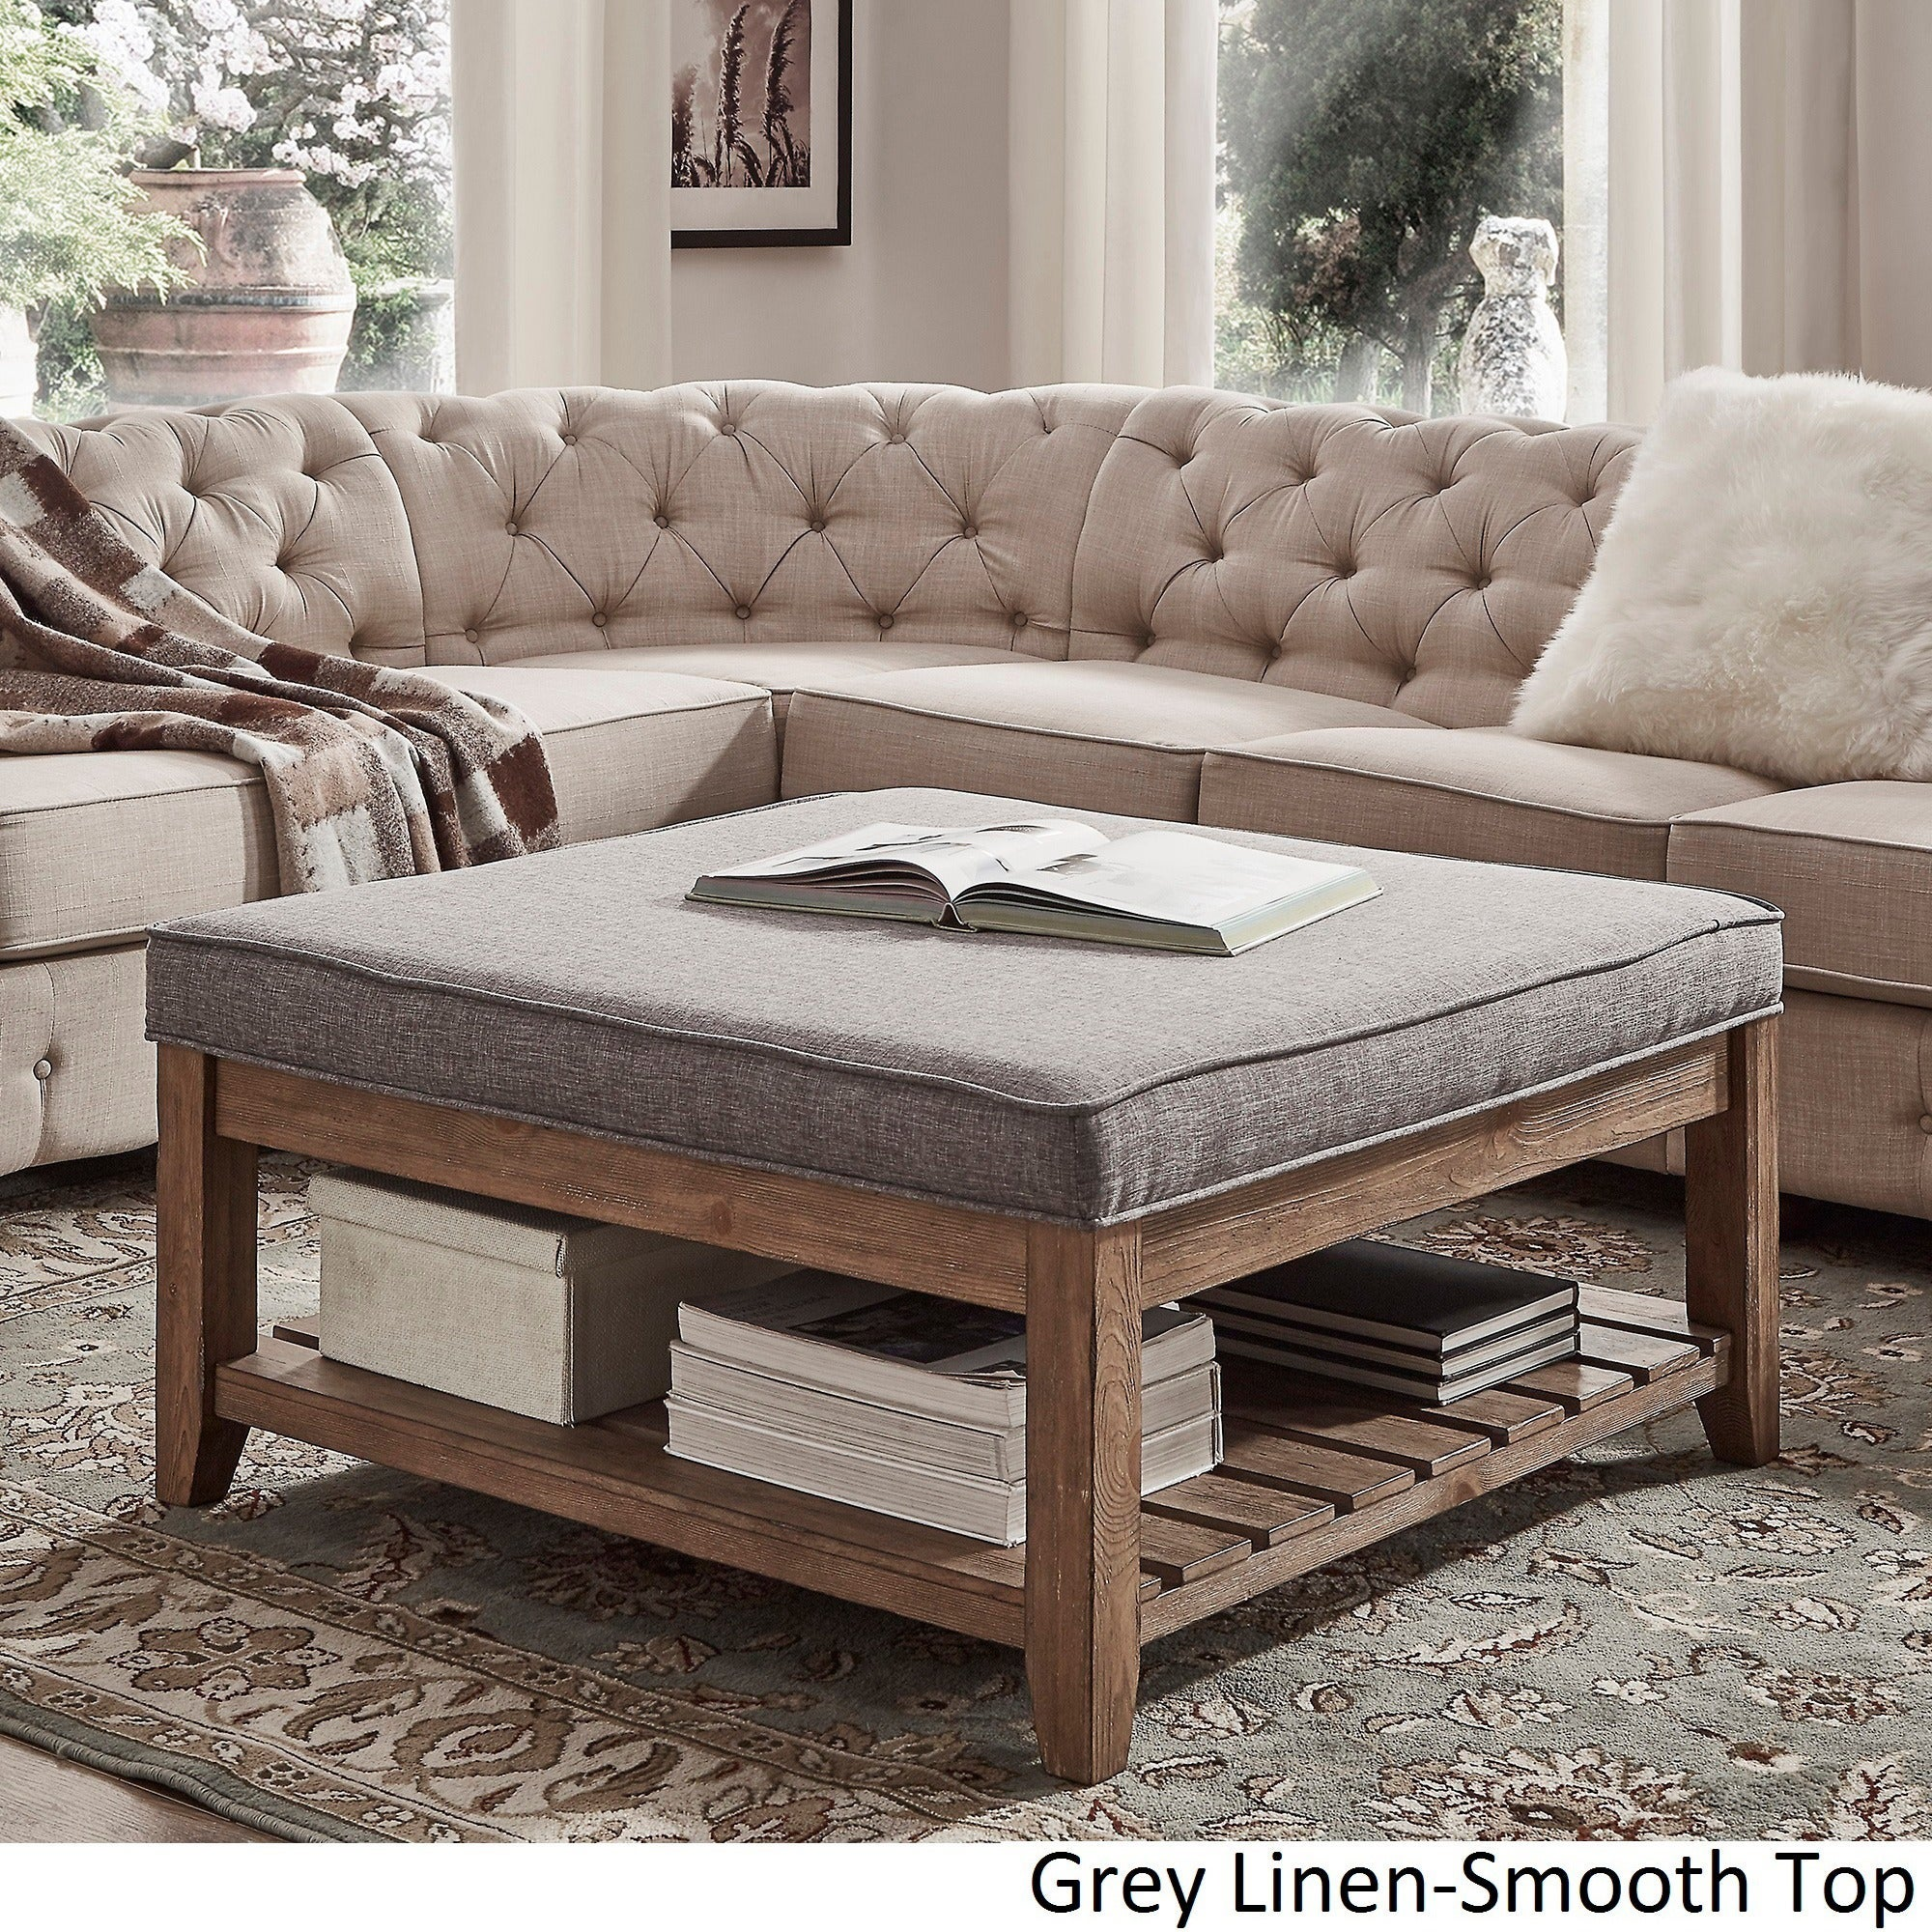 Lennon Pine Planked Storage Ottoman Coffee Table by iNSPIRE Q Artisan -  Free Shipping Today - Overstock.com - 20137487